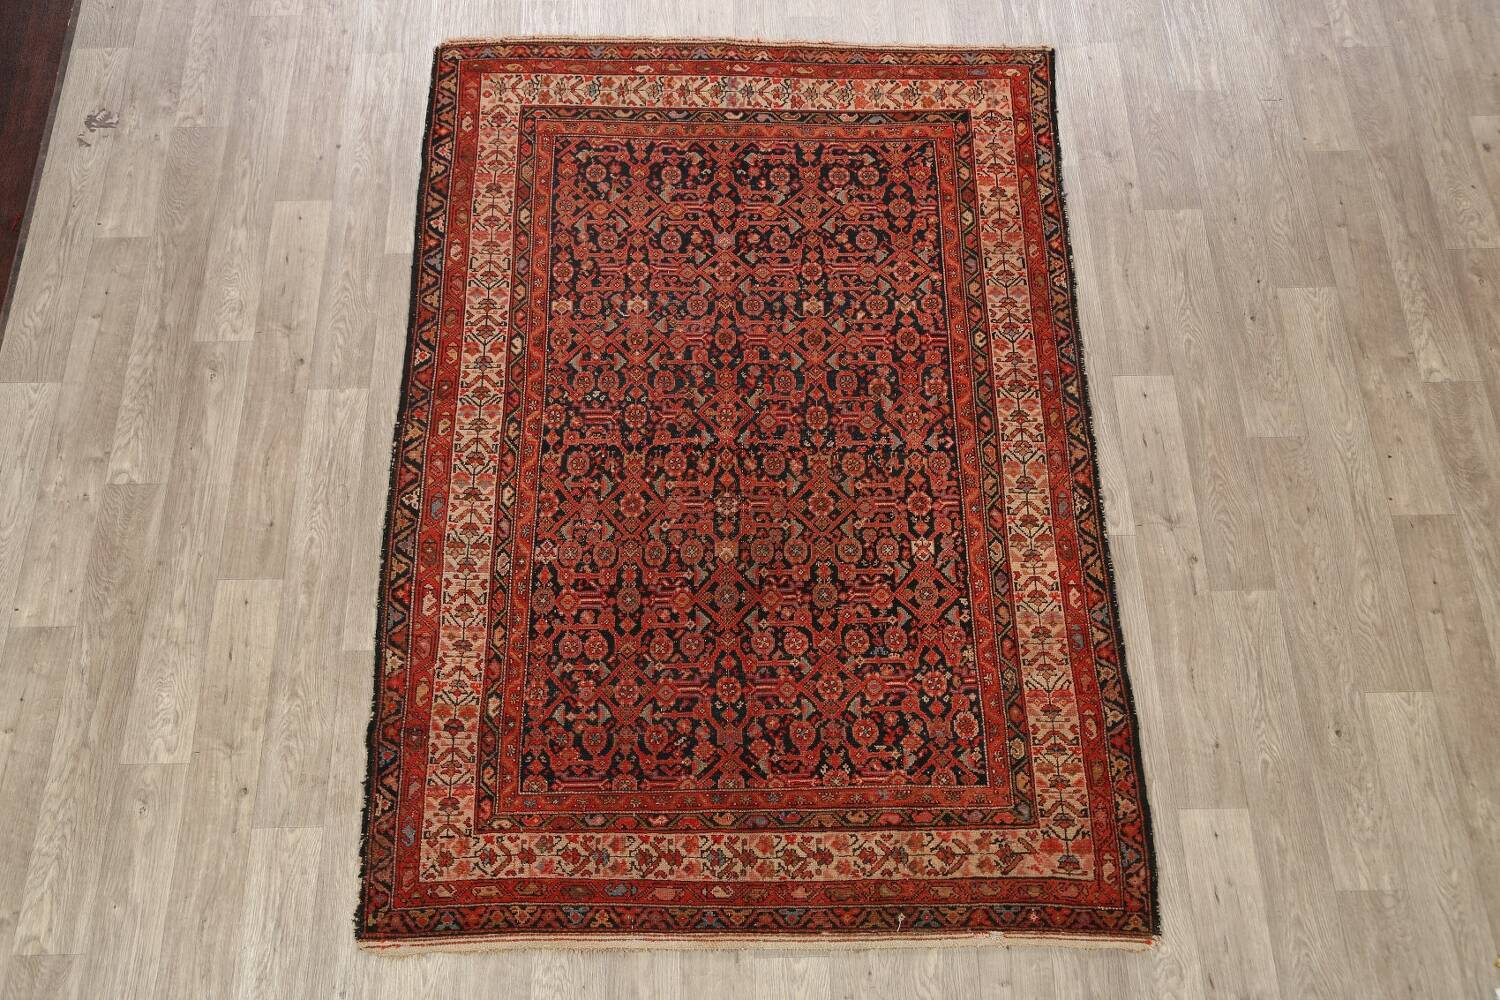 Pre-1900 Antique Malayer Vegetable Dye Persian Area Rug 5x7 image 2